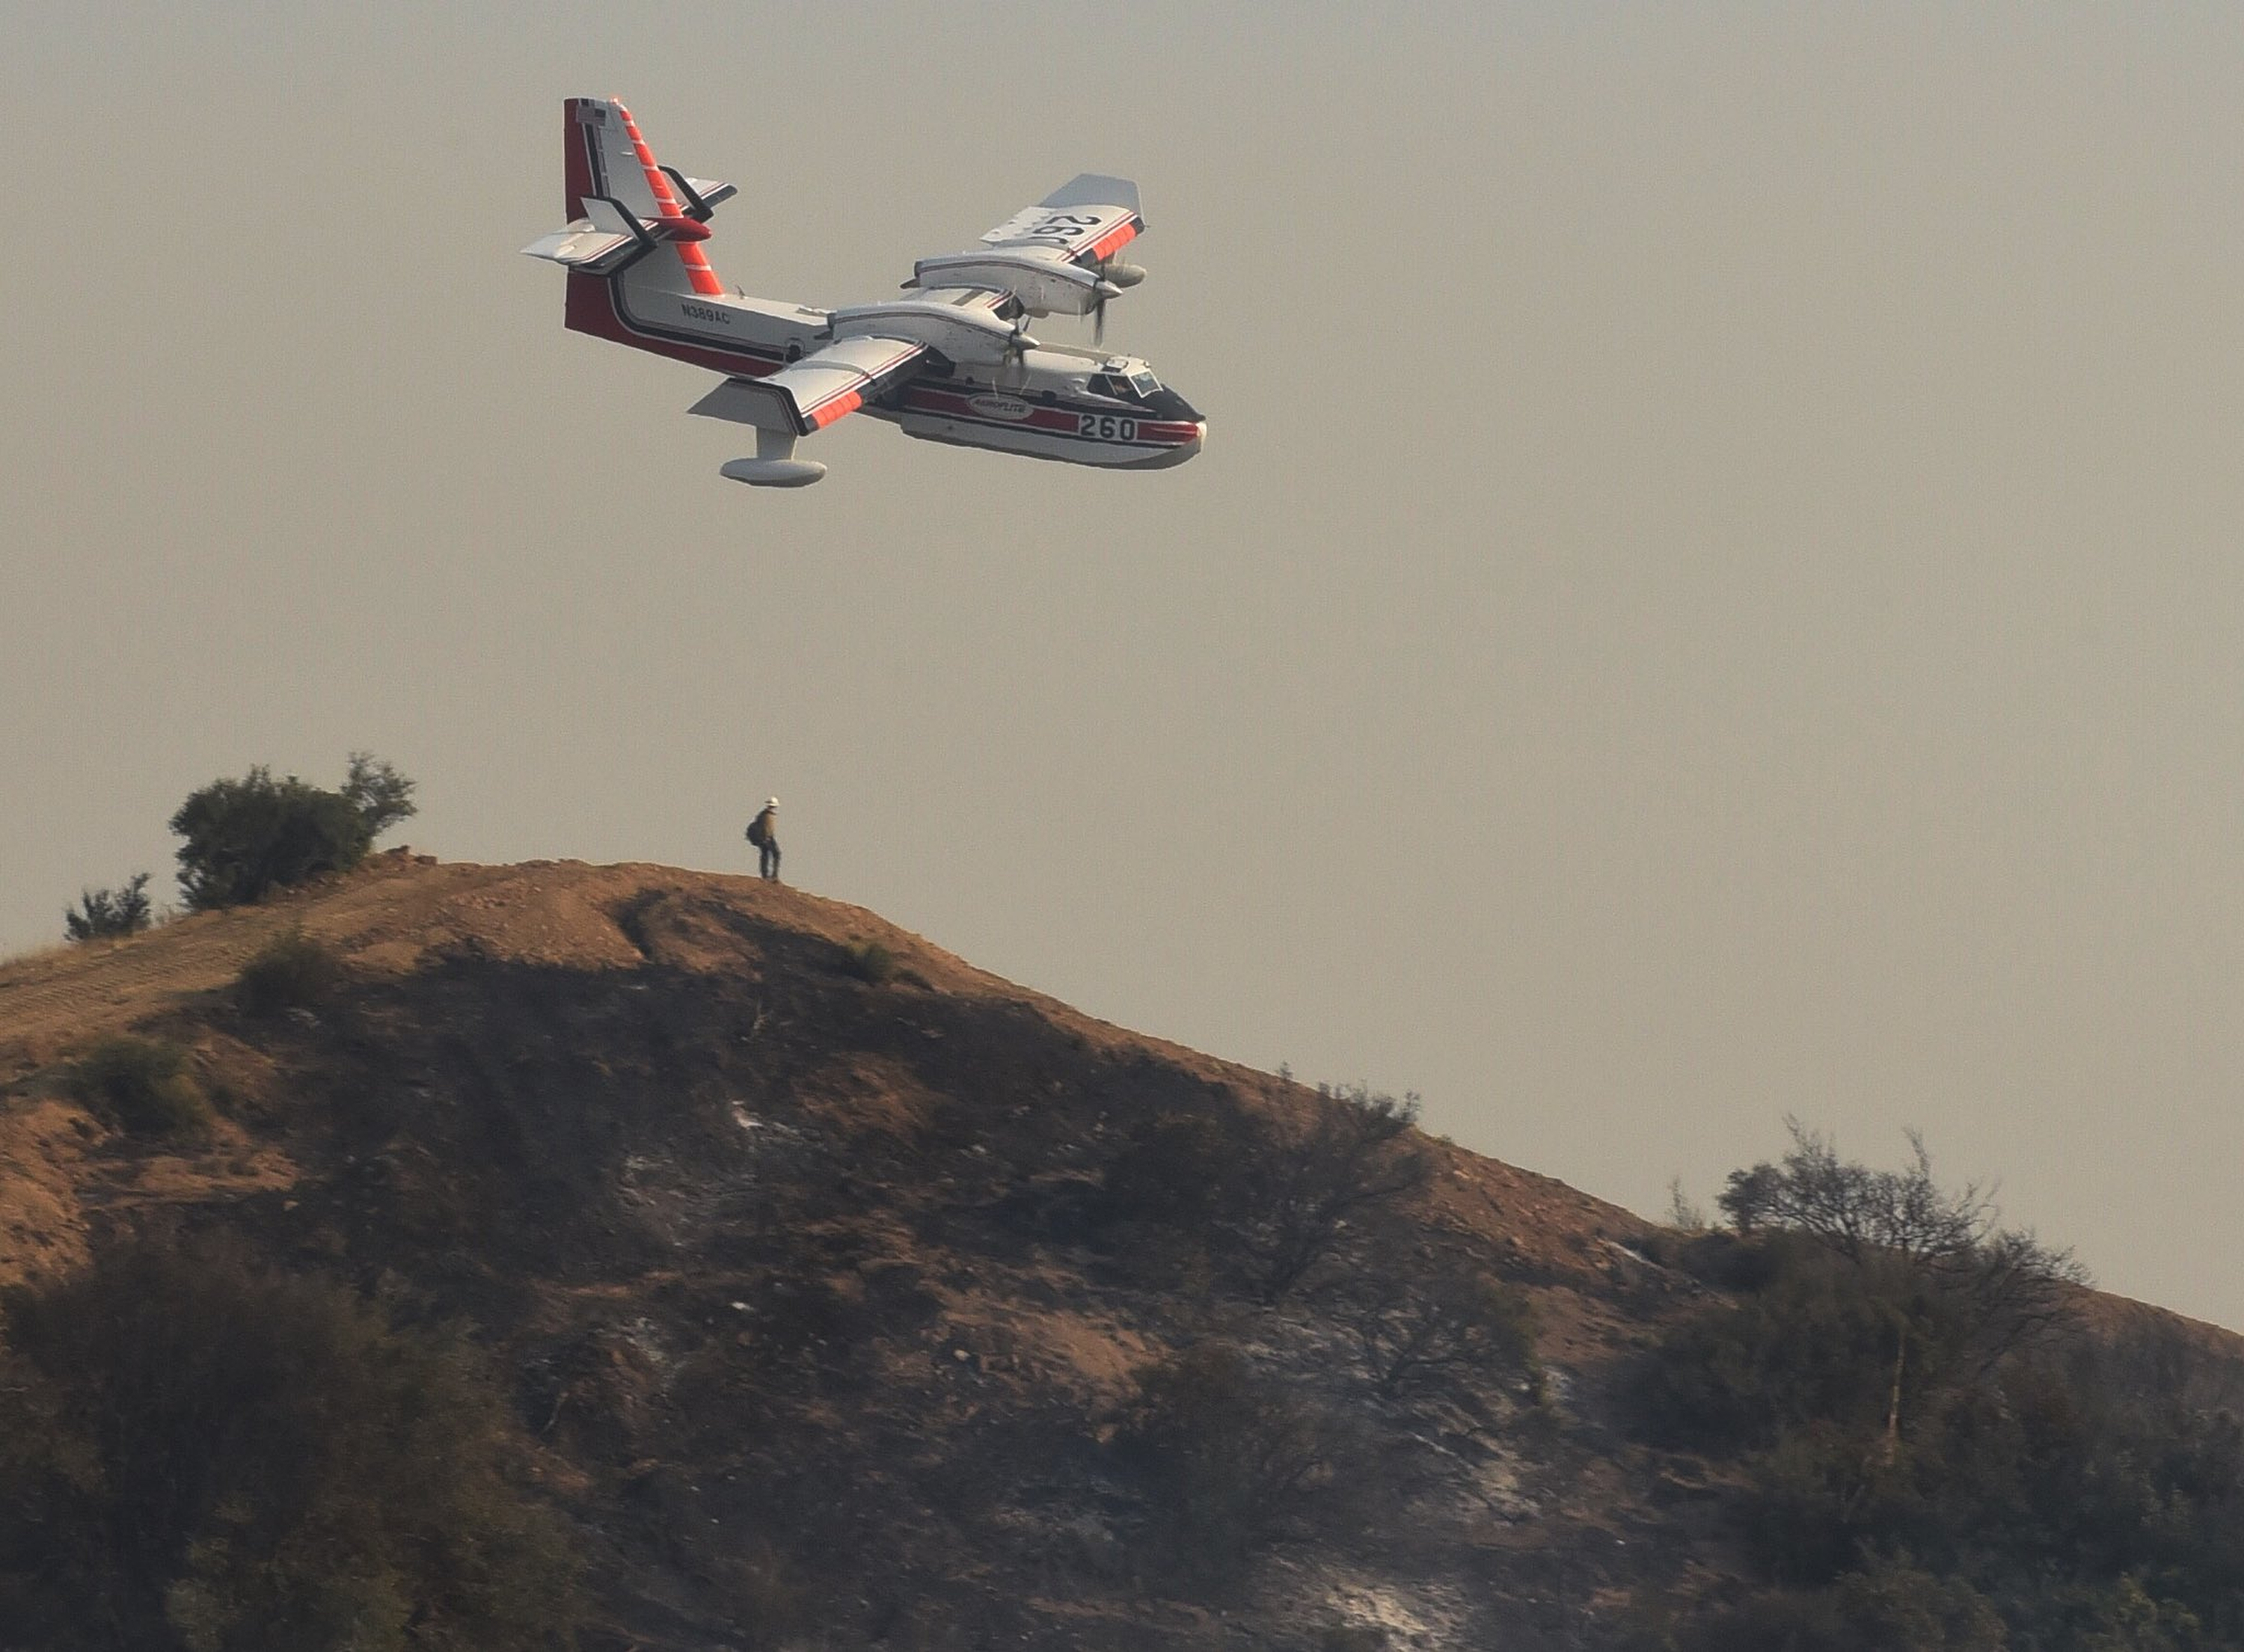 In this photo provided by the Santa Barbara County Fire Department, a Bombardier 415 Super Scooper aircraft comes in for a water drop below East Camino Cielo in the hills above Montecito, Calif., Sunday morning, Dec. 17, 2017. Thousands of firefighters tried Sunday to shield coastal communities from one of the biggest wildfires in California history while a funeral procession rolled past burn-scarred hillsides in honor of one of their colleagues who was killed battling the flames. (Mike Eliason/Santa Barbara County Fire Department via AP)